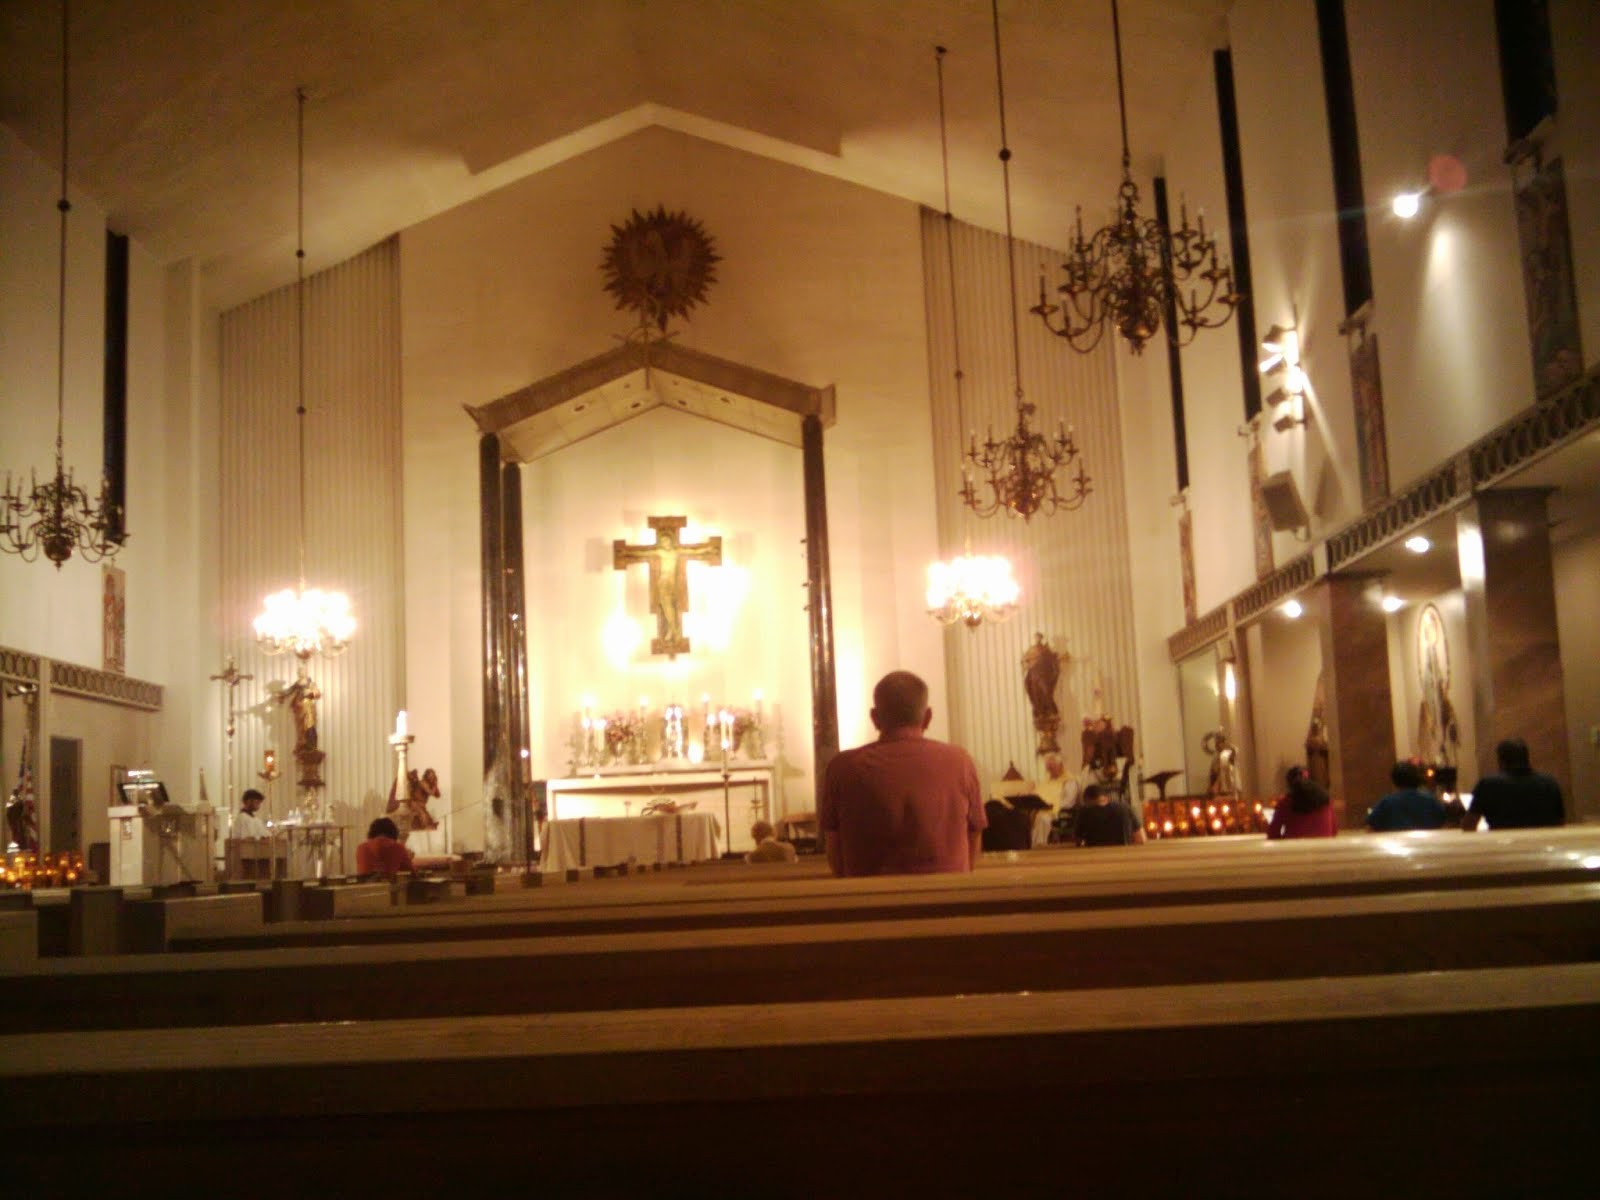 8/5/13 st victor church west hollywood ca (not a gay church either) & THEOLOGICAL (ONE) (I) 020415 : 8/5/13 st victor church west ...